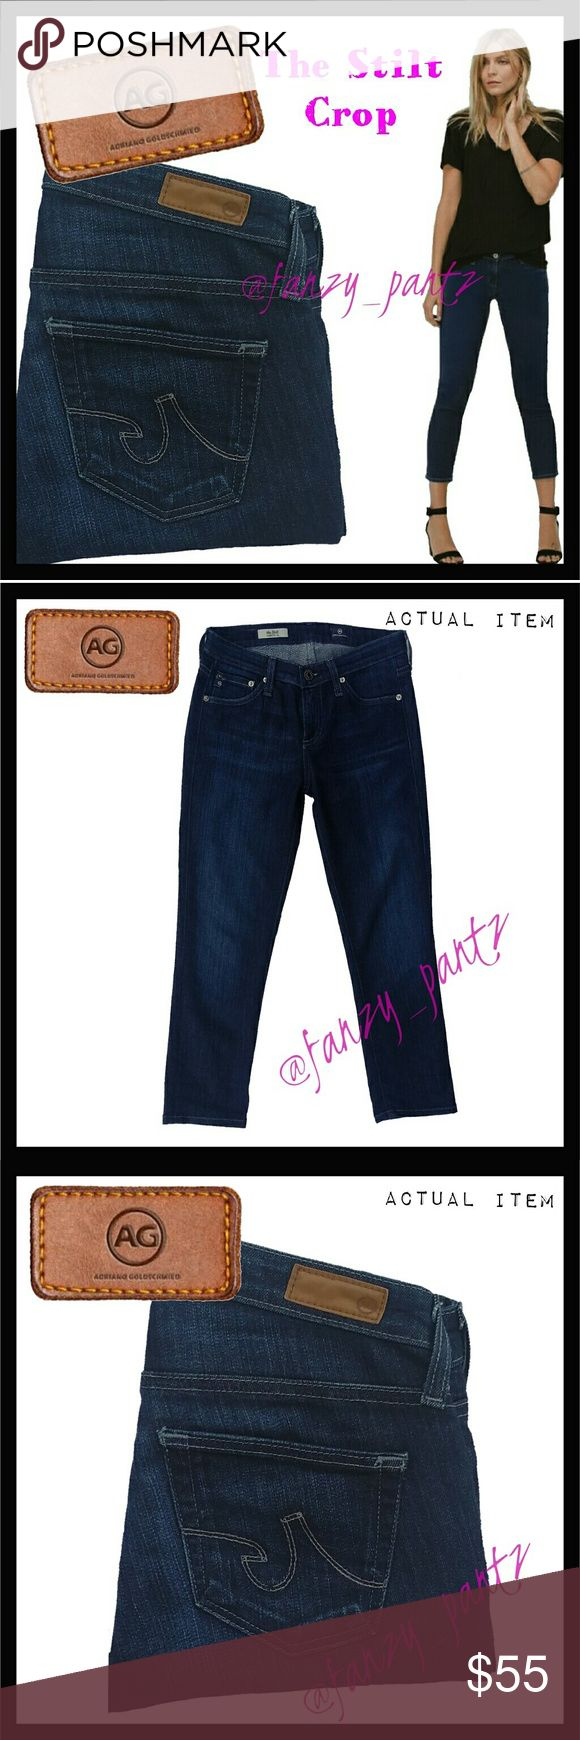 🌷 AG the Stilt Crop Jeans size 25 Adriano Goldschmied The Stilt Crop size 25. The wash is CCD, a dark blue with light feathering through the thighs. Stock photo is close but not the exact wash, it's to show the fit/style. All other photos are of the actual item for sale. These have been professionally hemmed. Measurements in the last photo. NO TRADES PLEASE! OFFERS WELCOME THROUGH OFFER FEATURE ONLY PLEASE!  371755 AG Adriano Goldschmied Jeans Ankle & Cropped